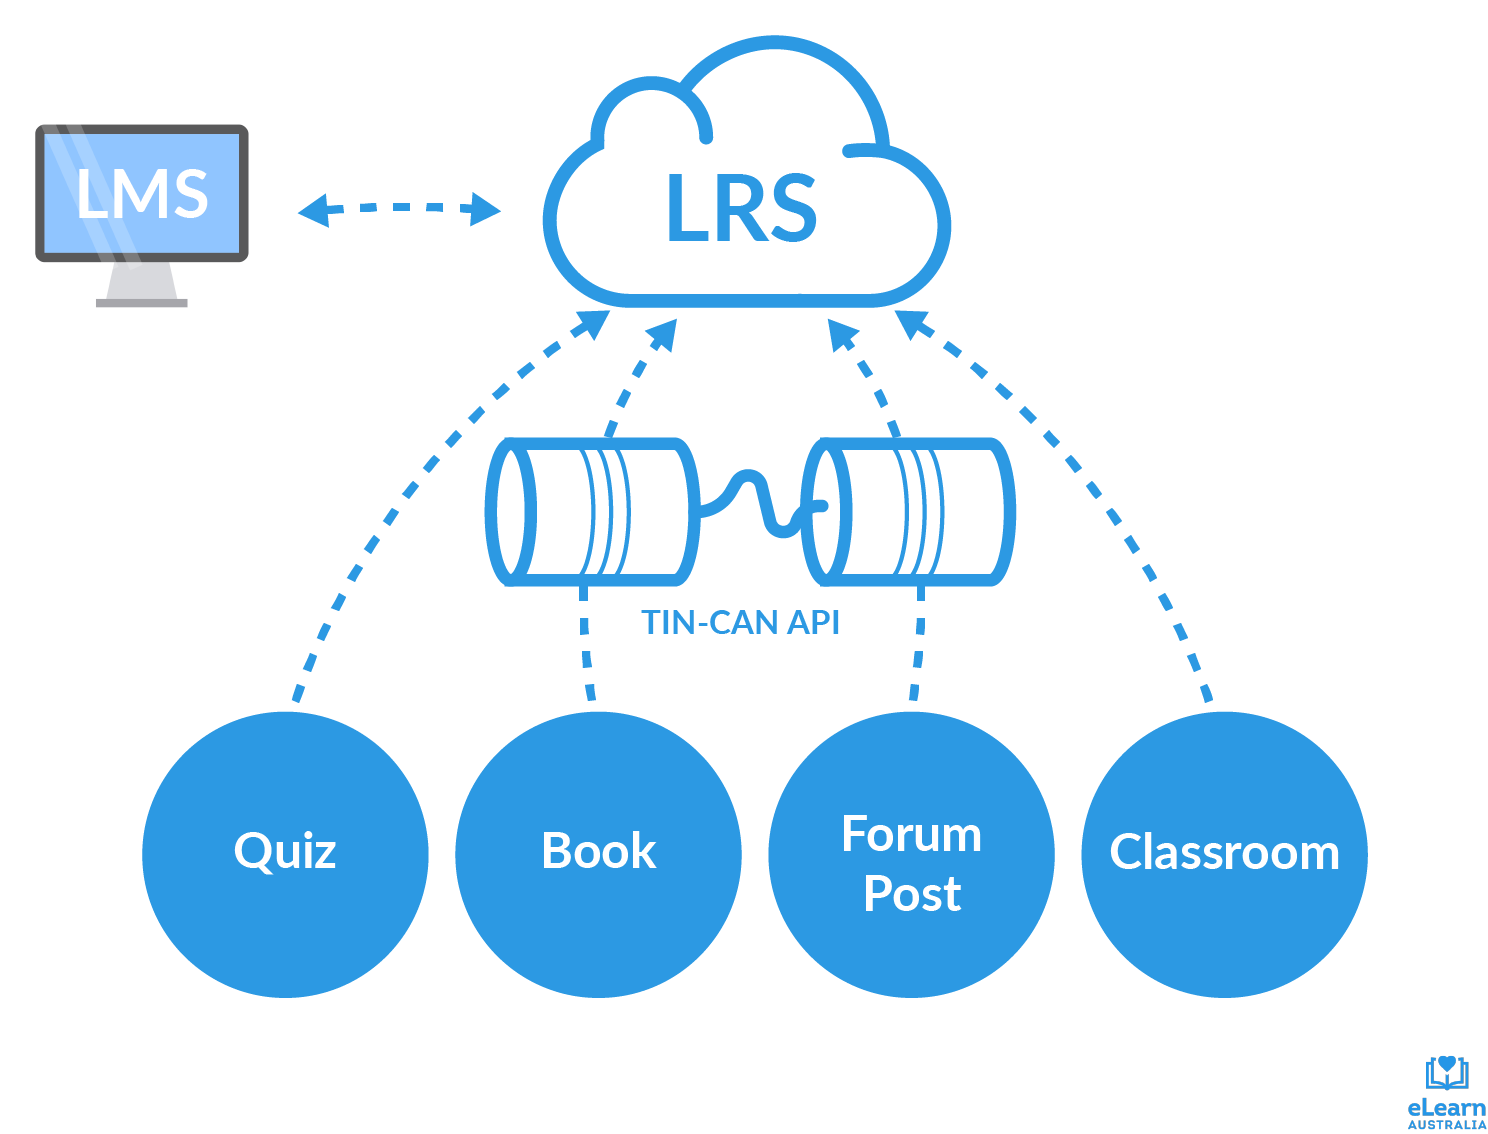 Quiz, book, forum post and classroom data are channeled to the LRS via the Tin Can API. The LRS sends and receives data from the LMS.